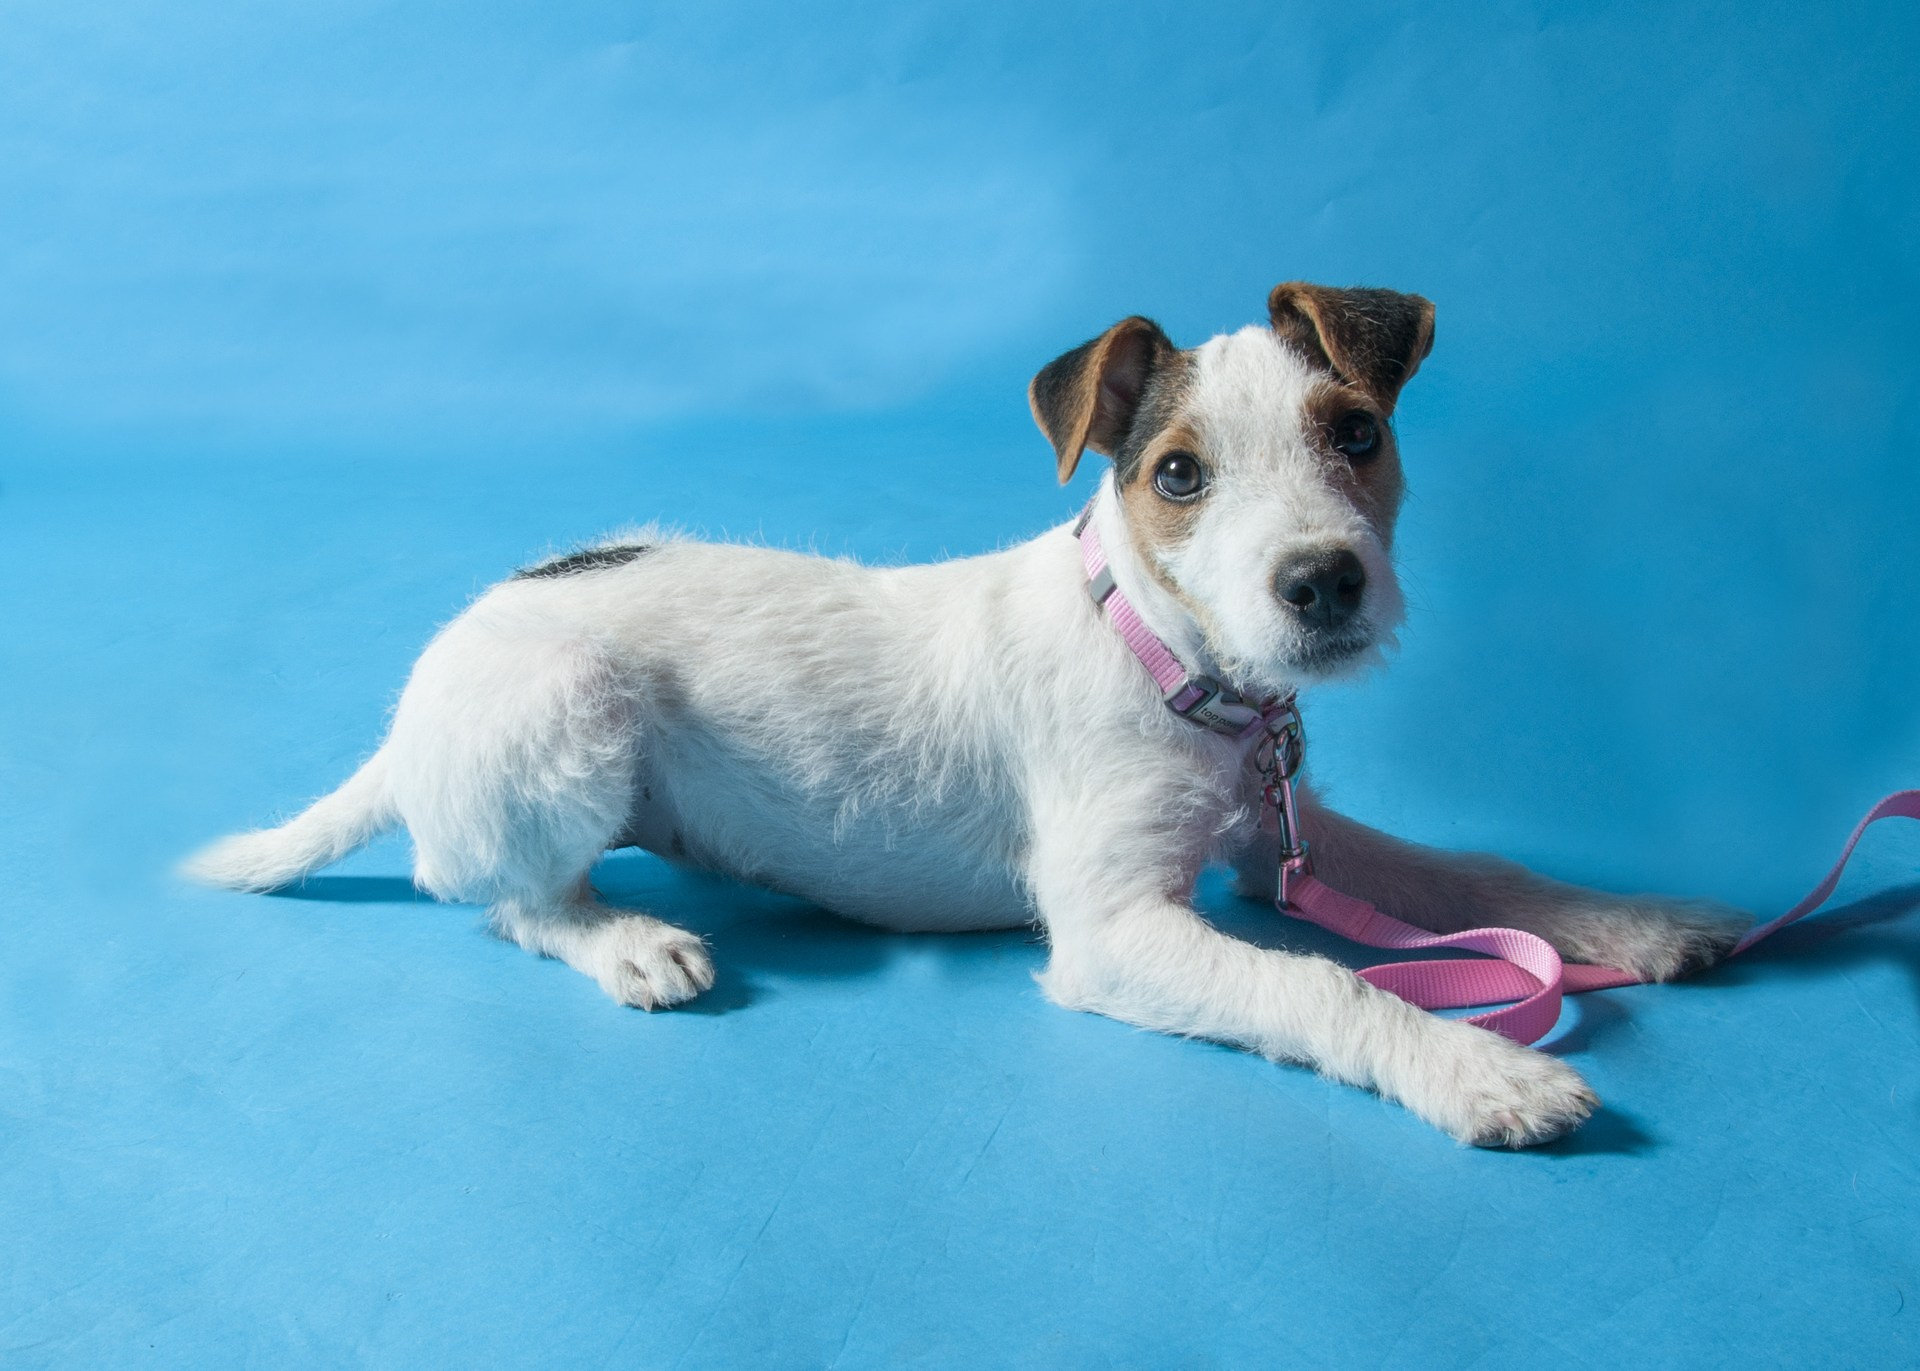 My Jack Russell Terrier, Dottie, at 8 mos. old.